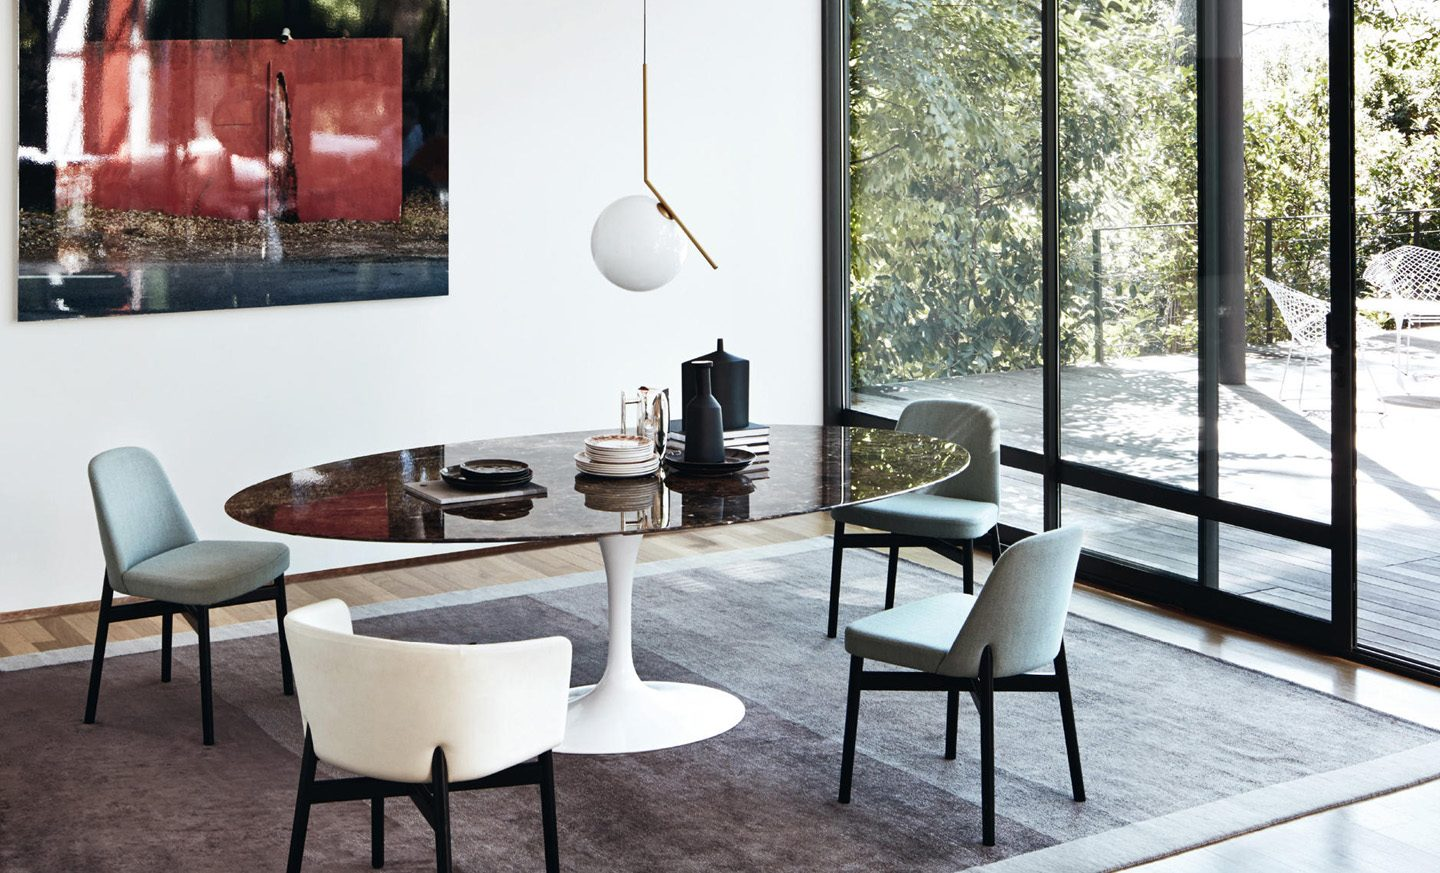 SAARINEN MARBLE DINING TABLE BY KNOLL